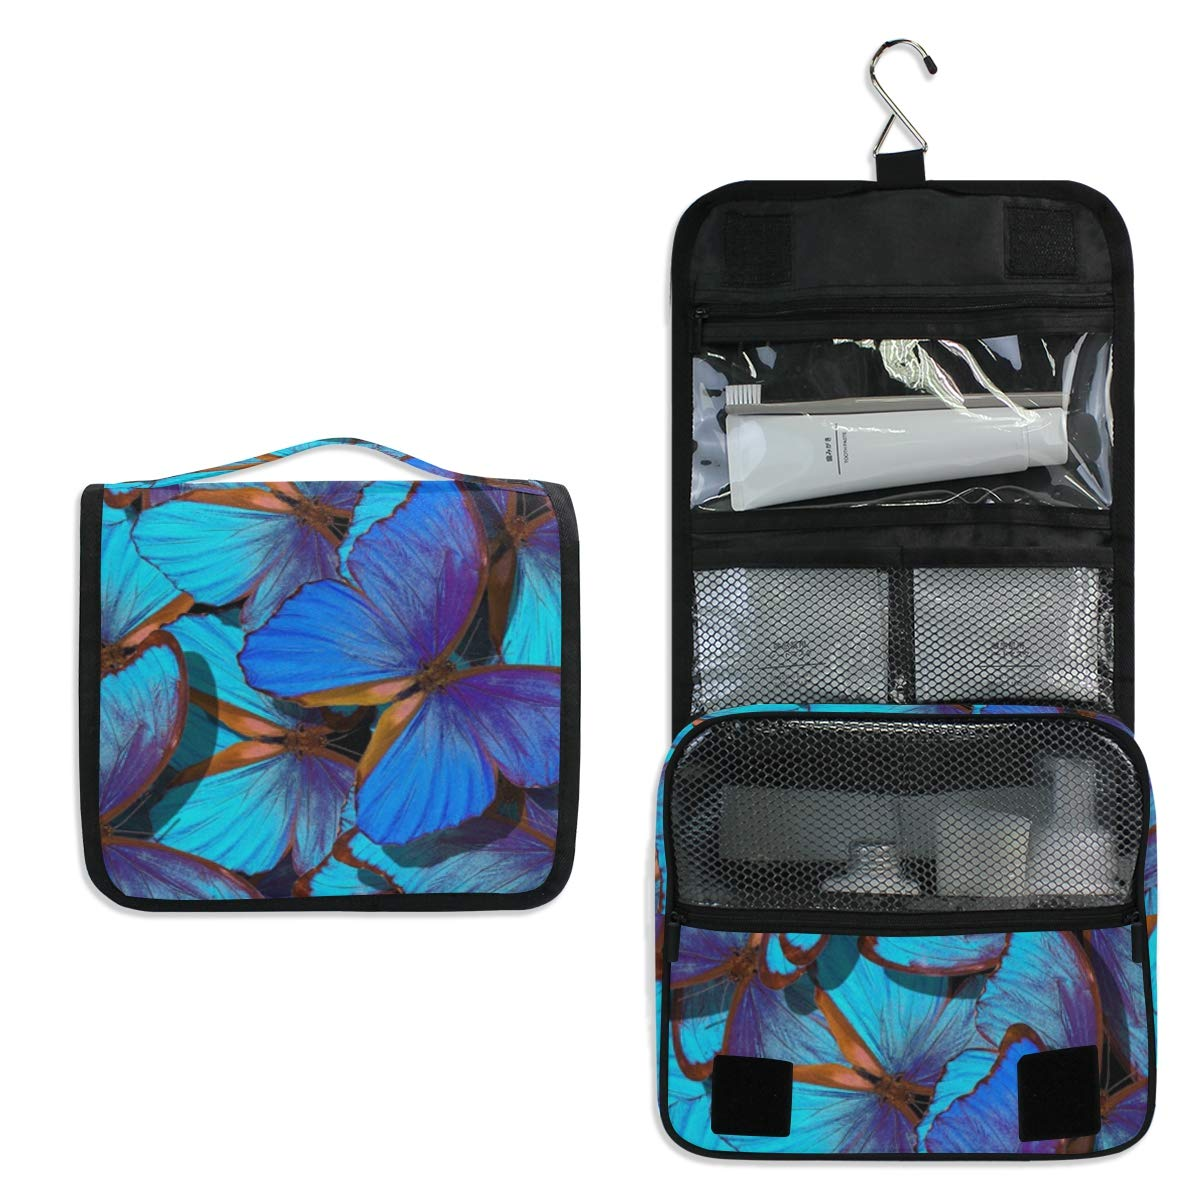 Hanging Travel Toiletry Bag - Flight Of Bright Blue Butterflies Waterproof Cosmetic Bag Portable Makeup Pouch for Toiletries Bathroom